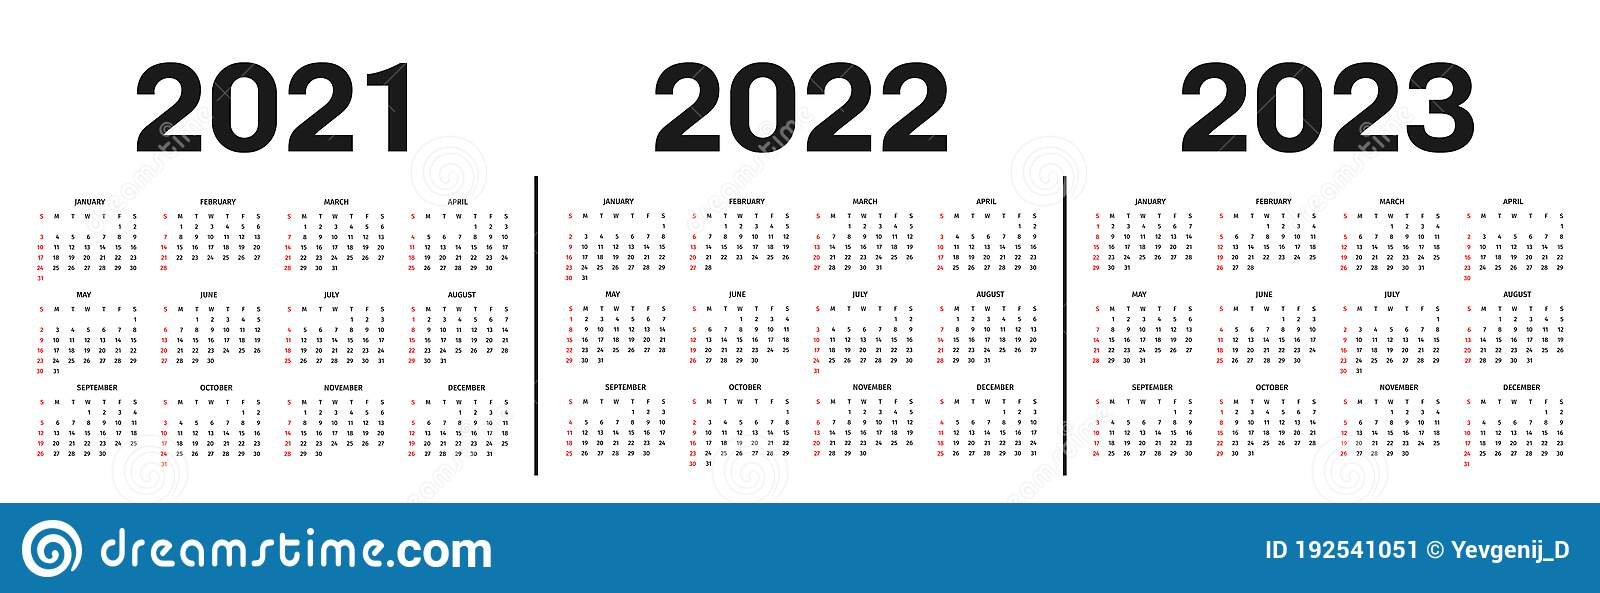 Calendar 2022 2023.Calendar 2021 2022 And 2023 Template Calendar Template In Black And White Colors Holidays In Red Colors Stock Vector Illustration Of December Background 192541051